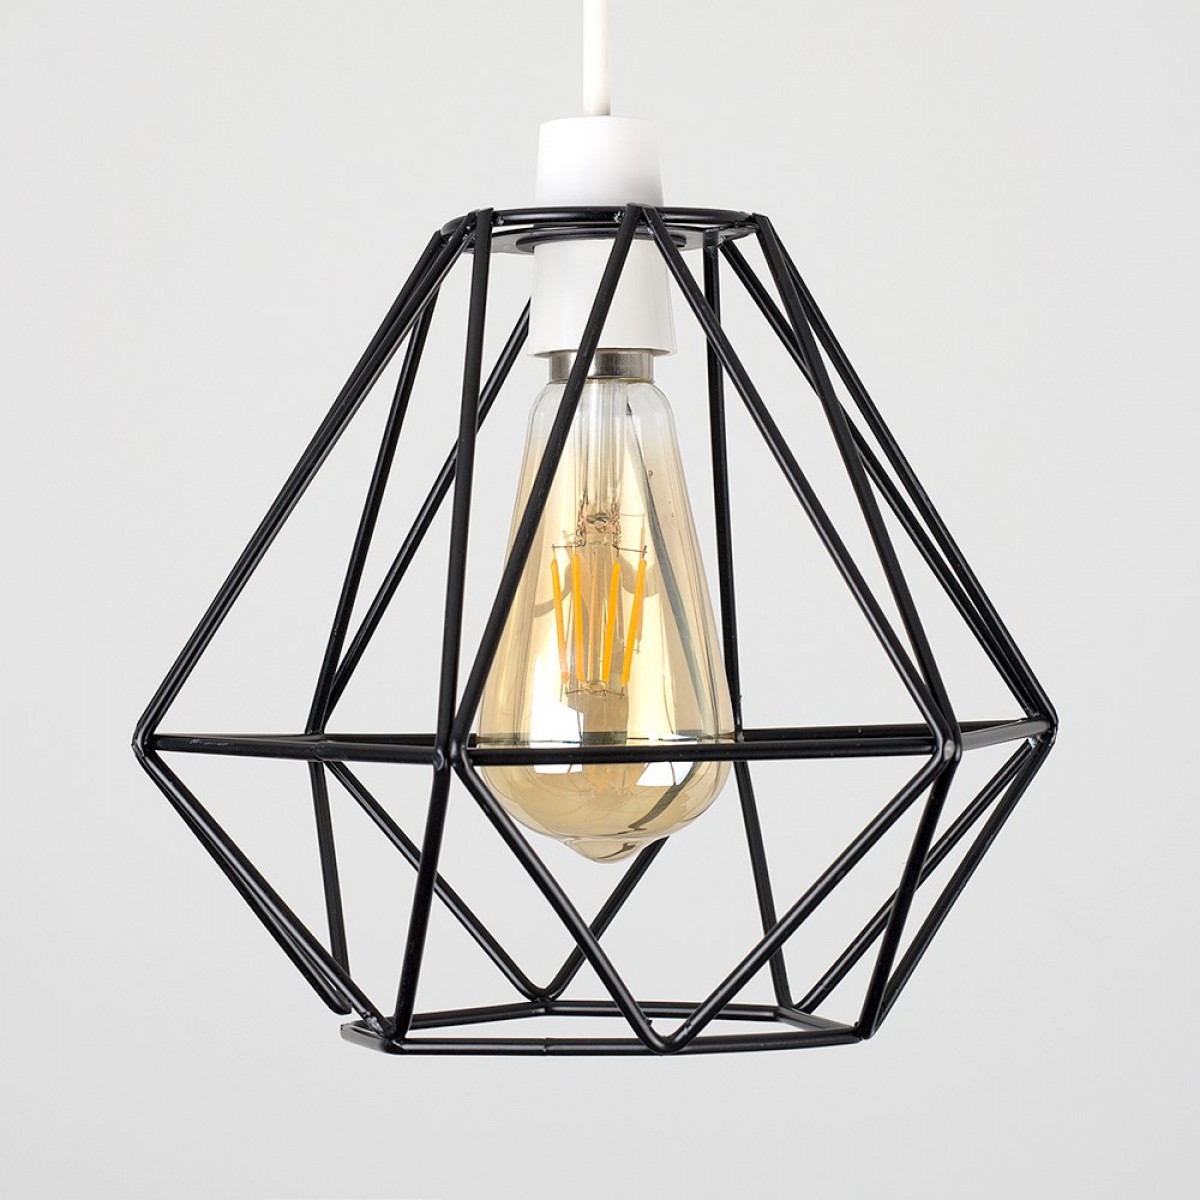 Let your home shine with this unique looking lampshade